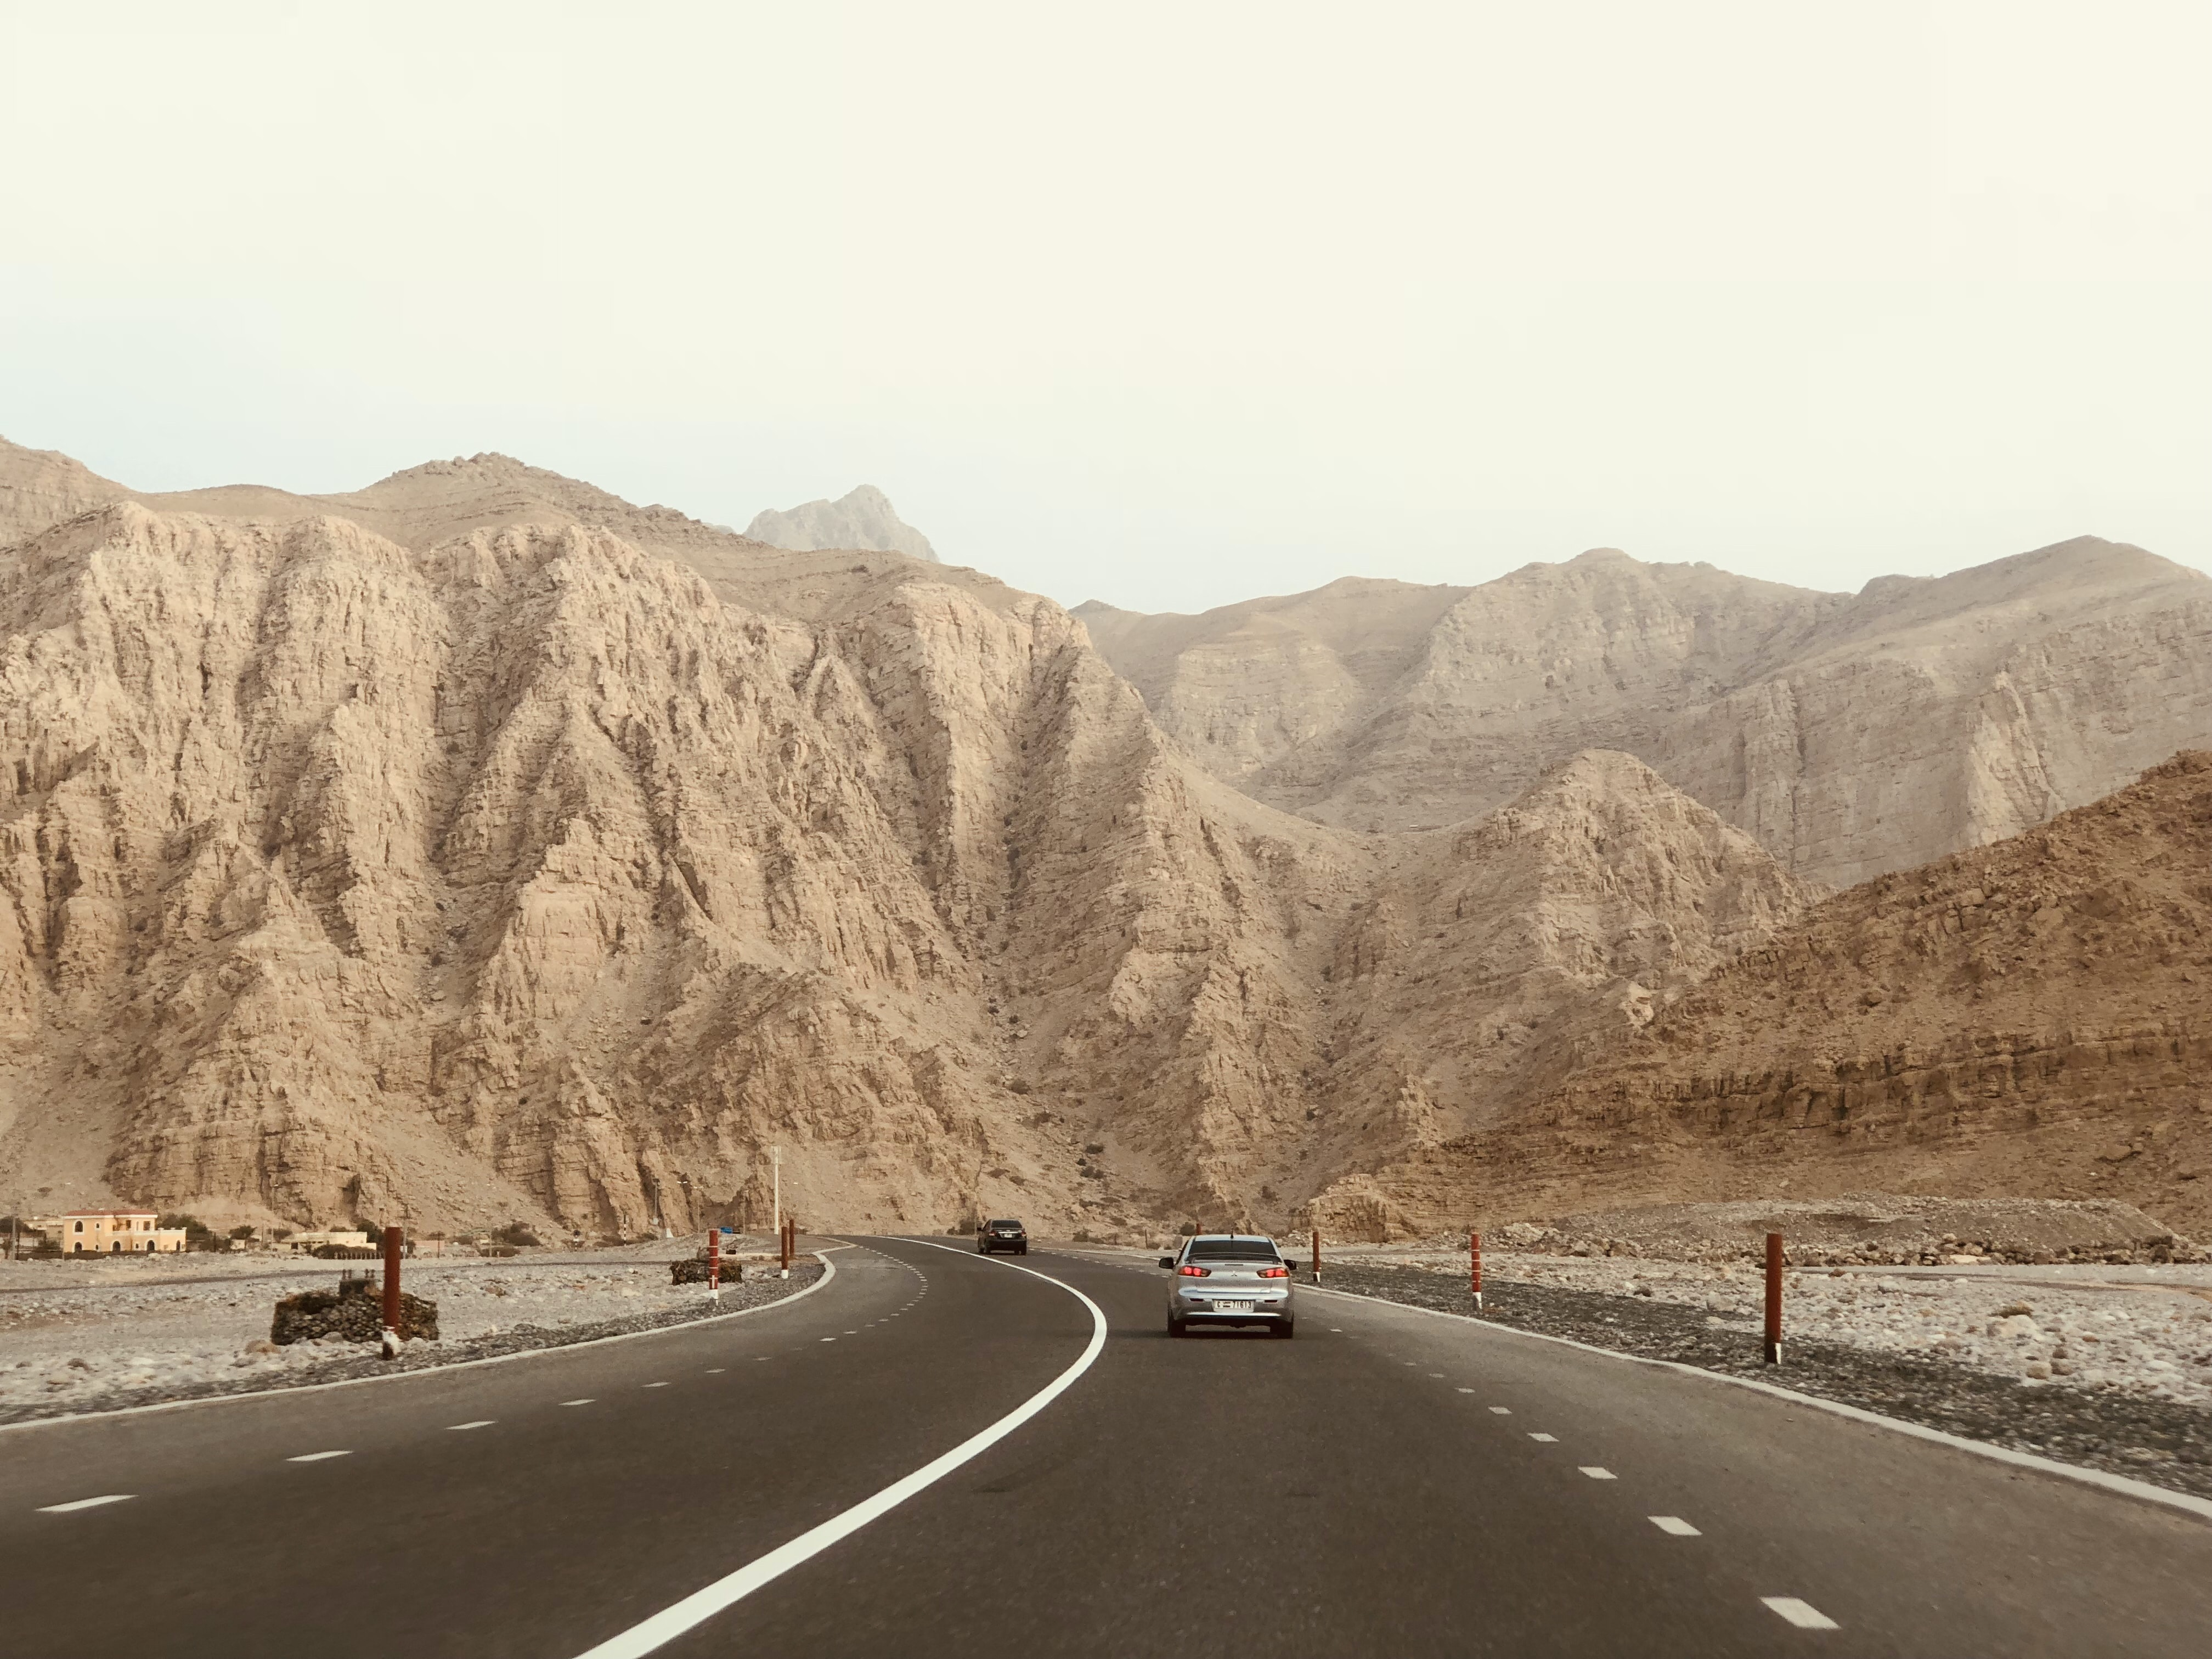 two vehicles on concrete highways near on mountains